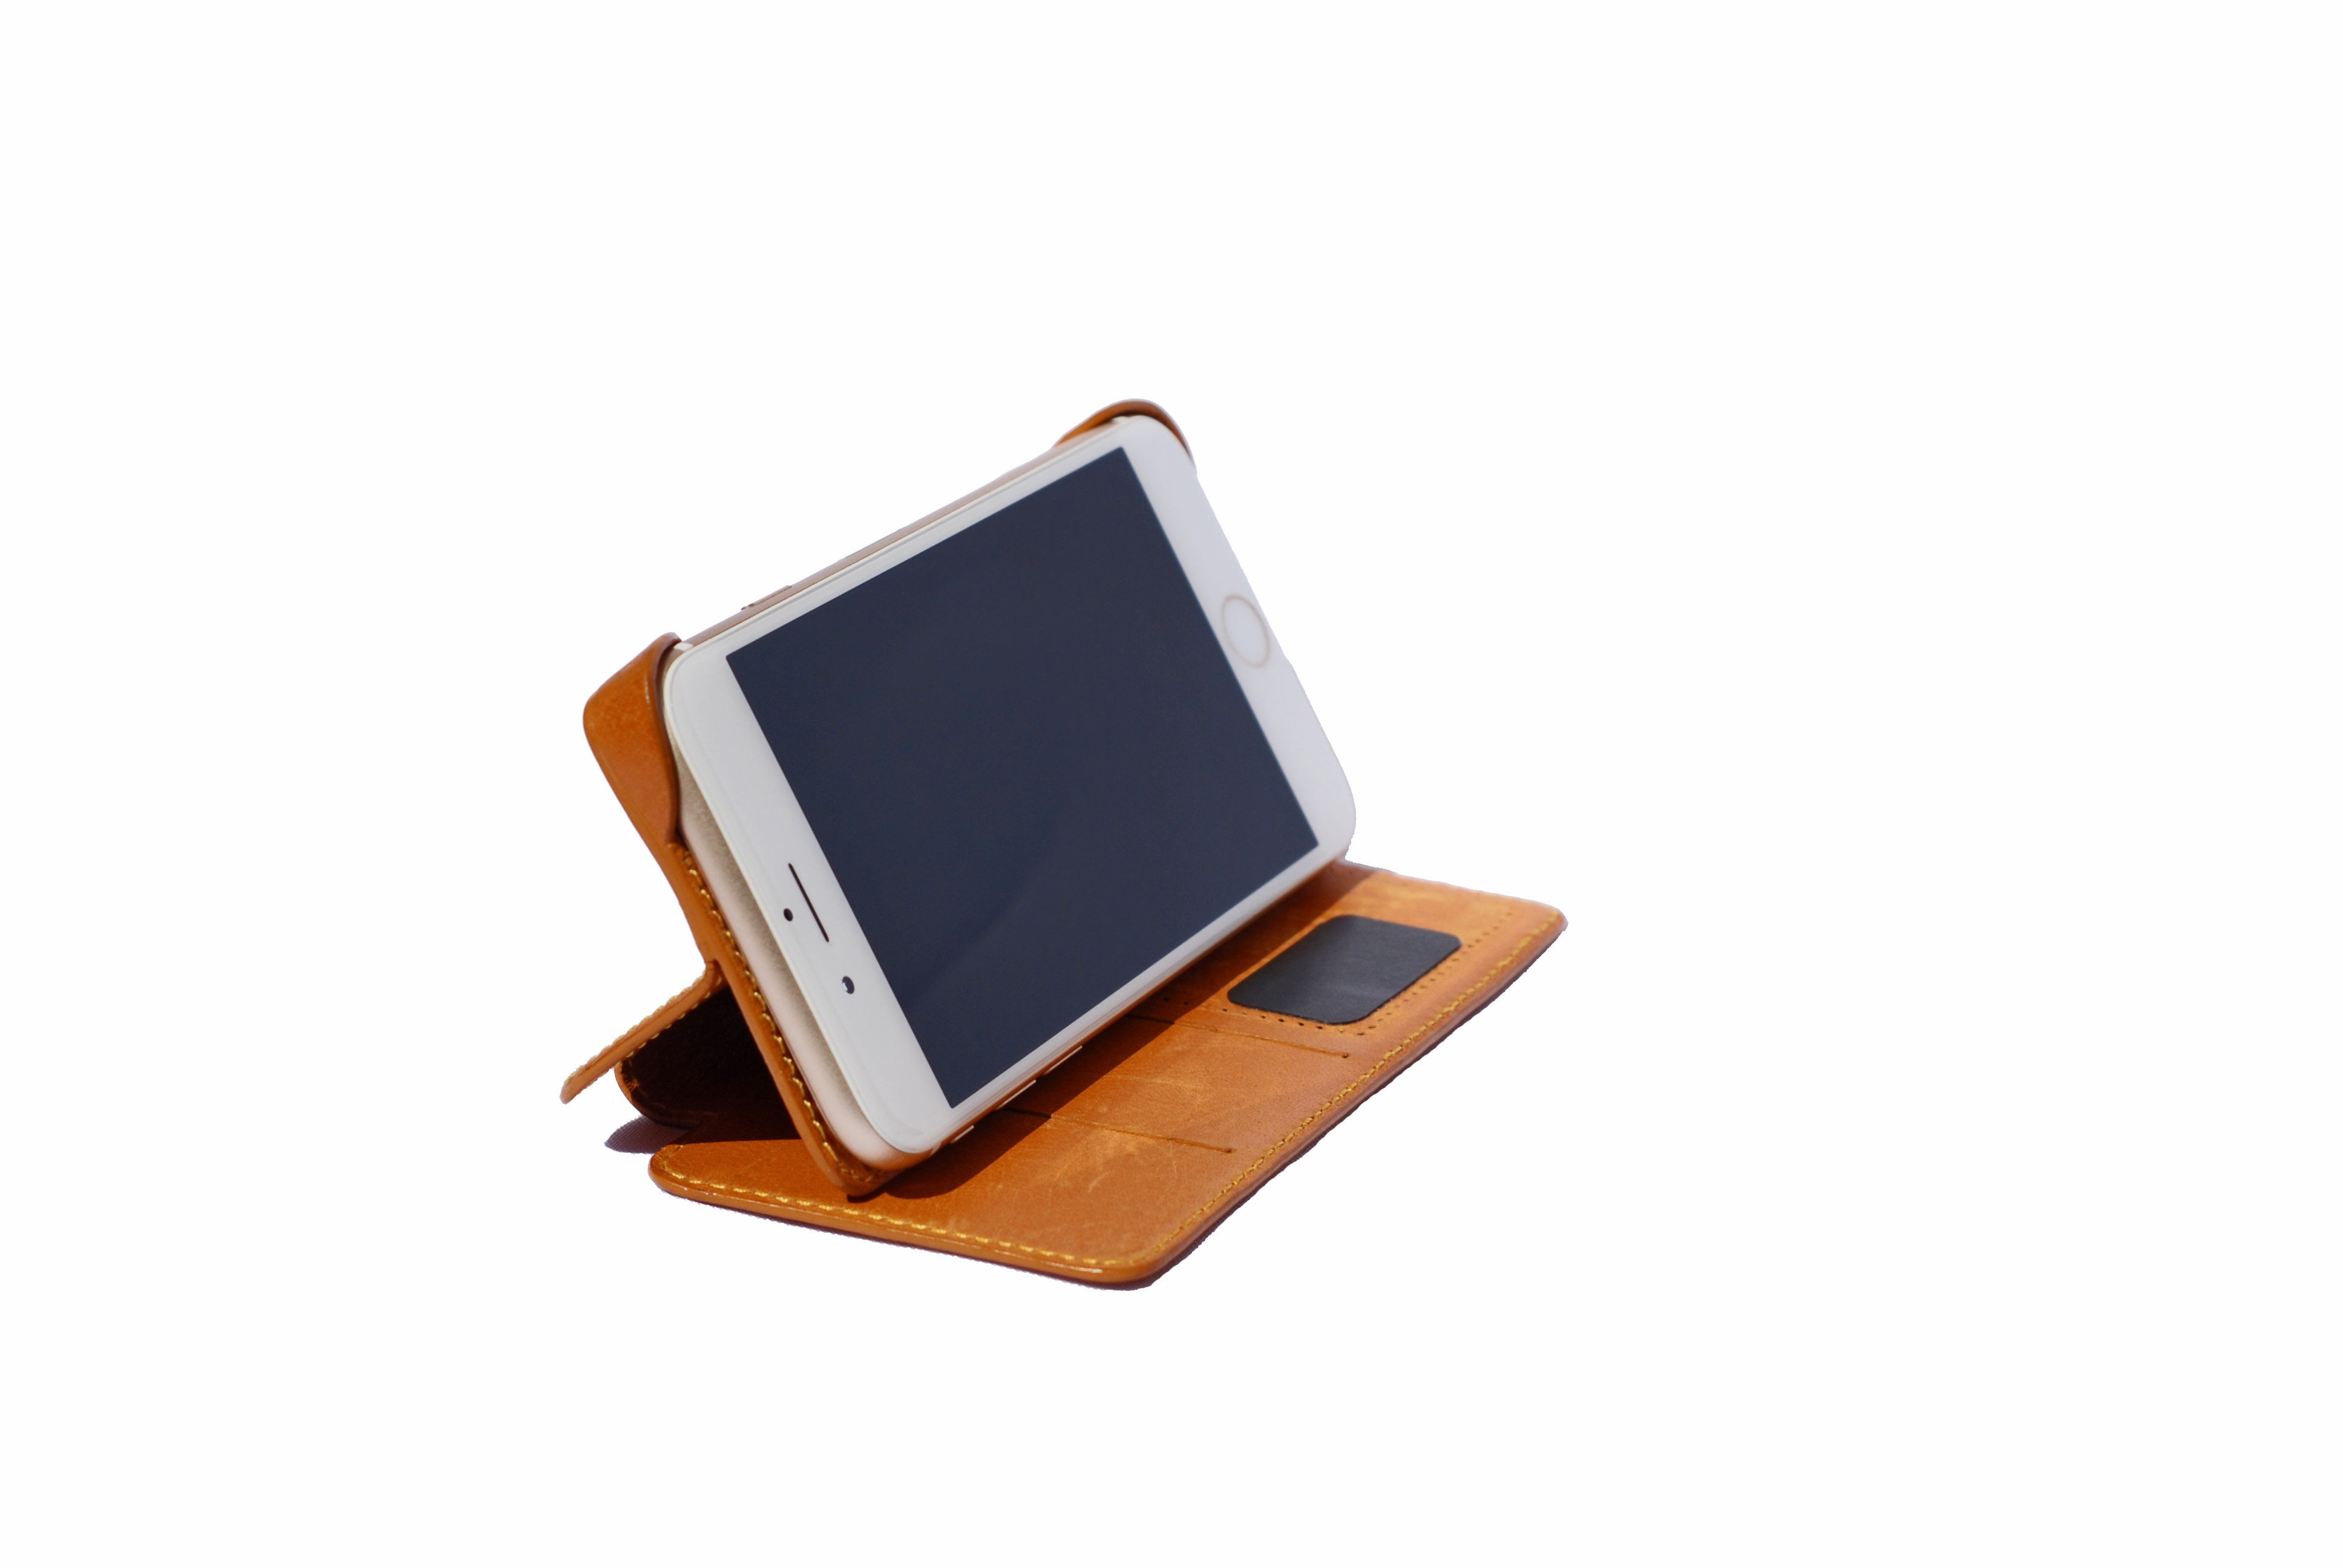 Use your case as a stand